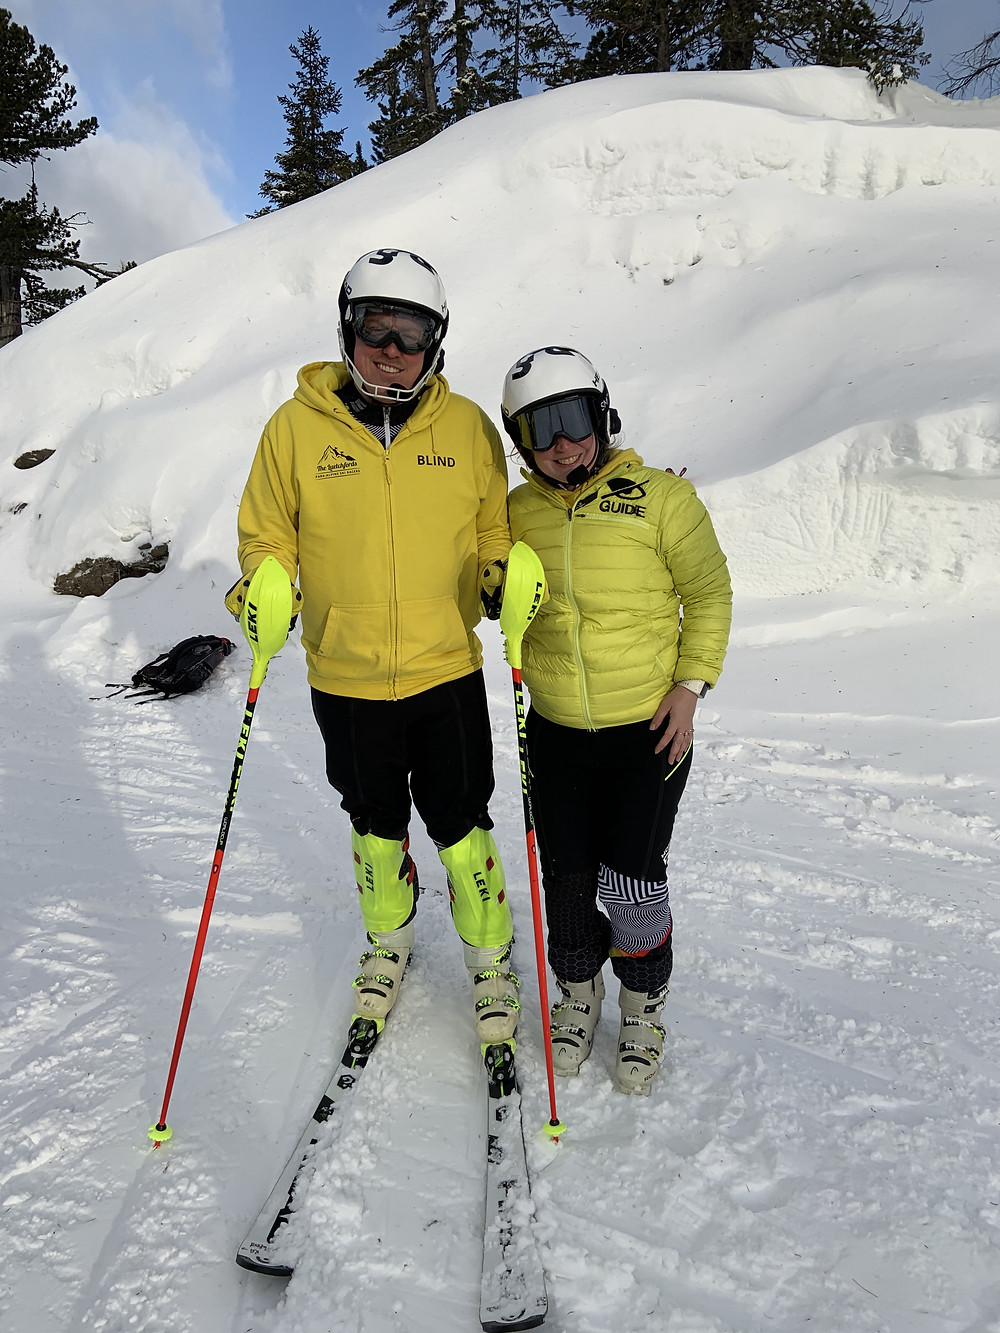 James and Alice ski training in Austria, 2019